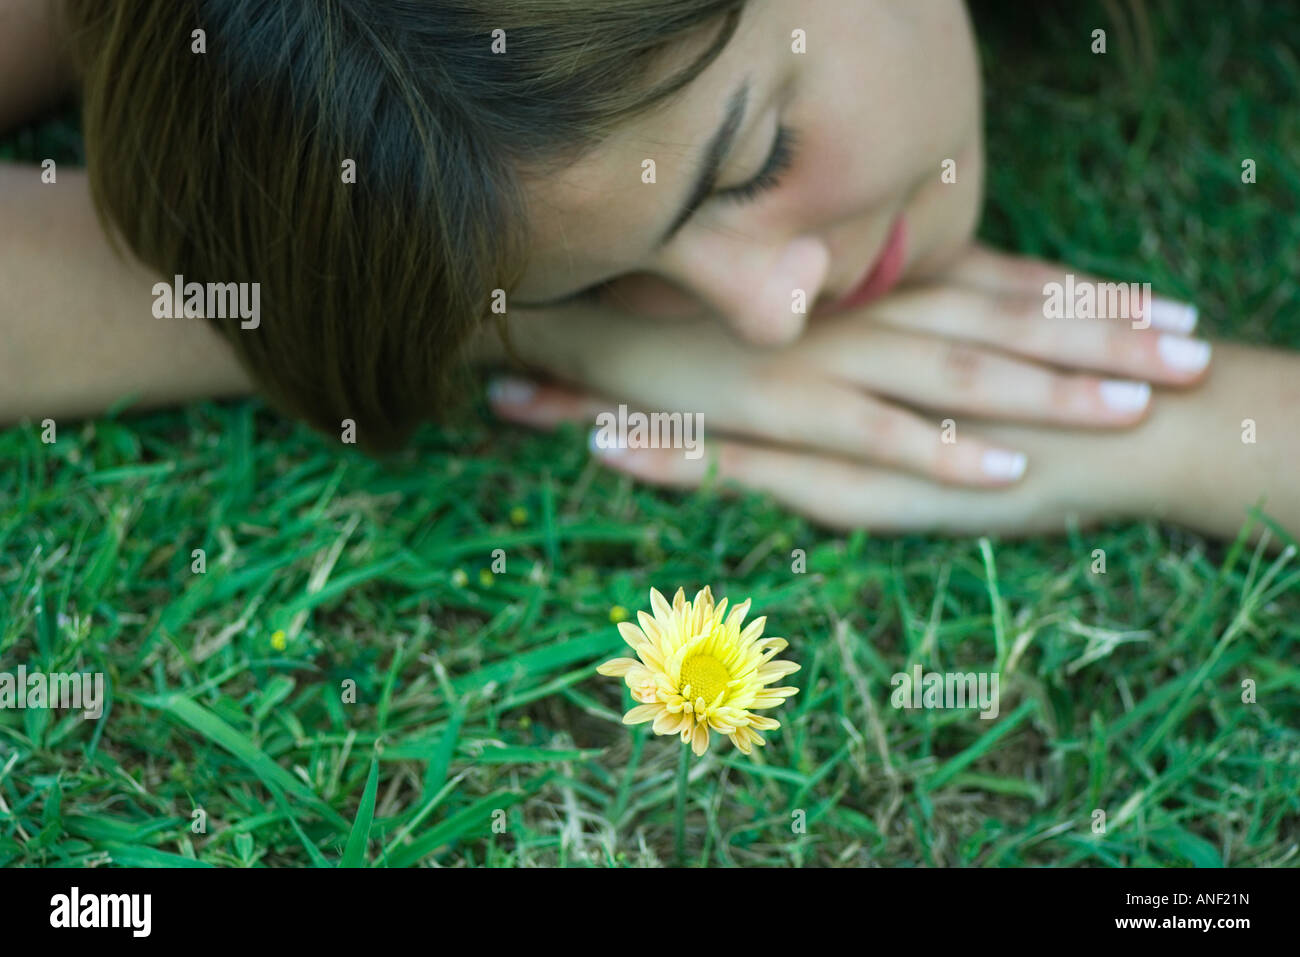 Woman lying on grass next to single yellow flower - Stock Image